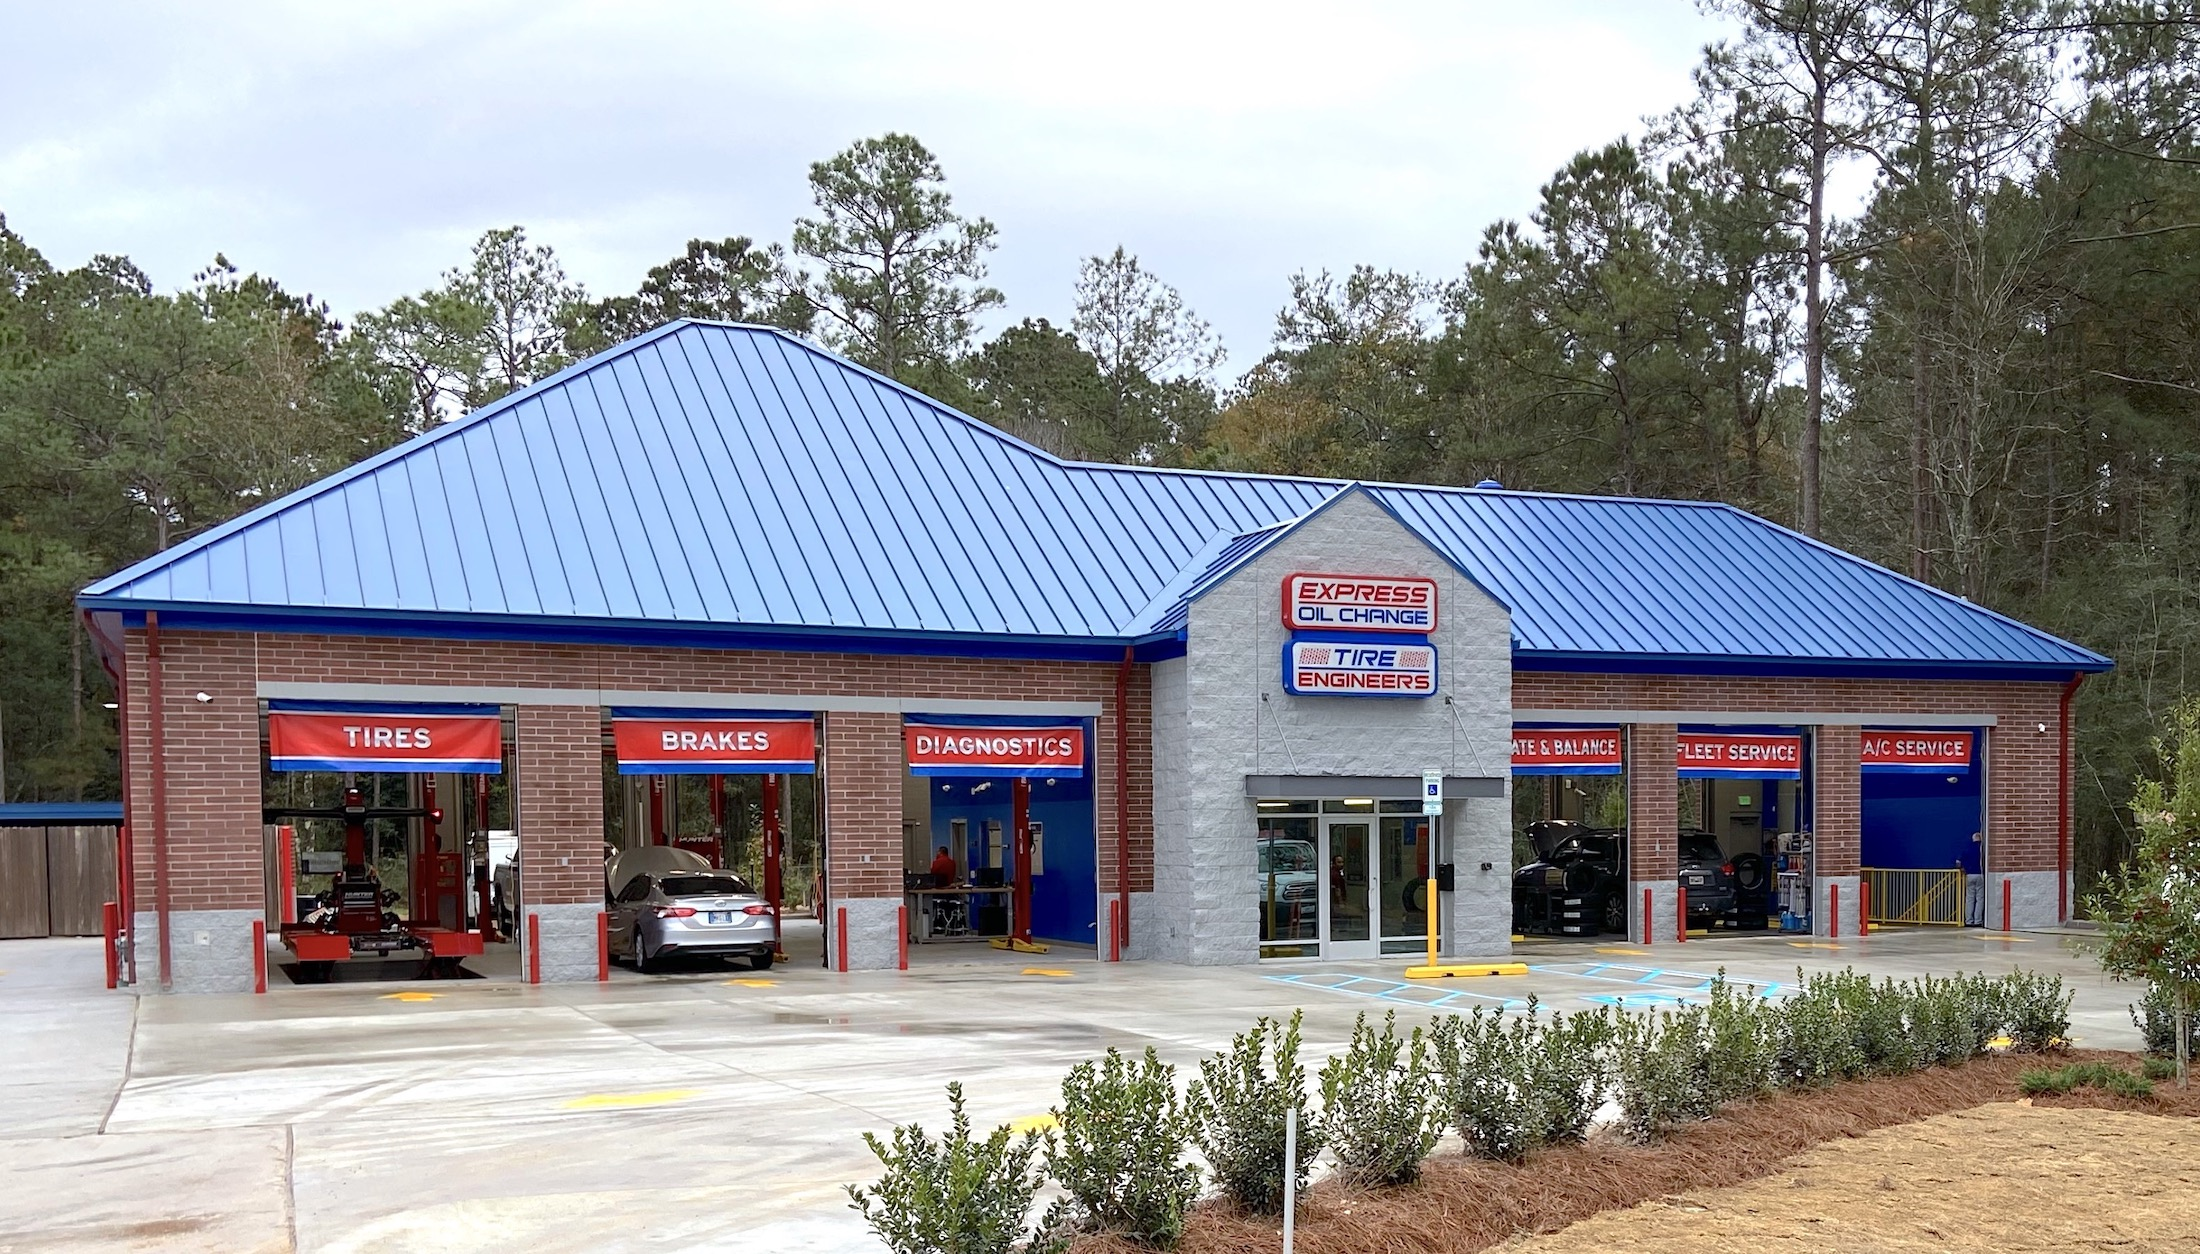 Express Oil Change & Tire Engineers at Covington, LA - Normandy Oaks store